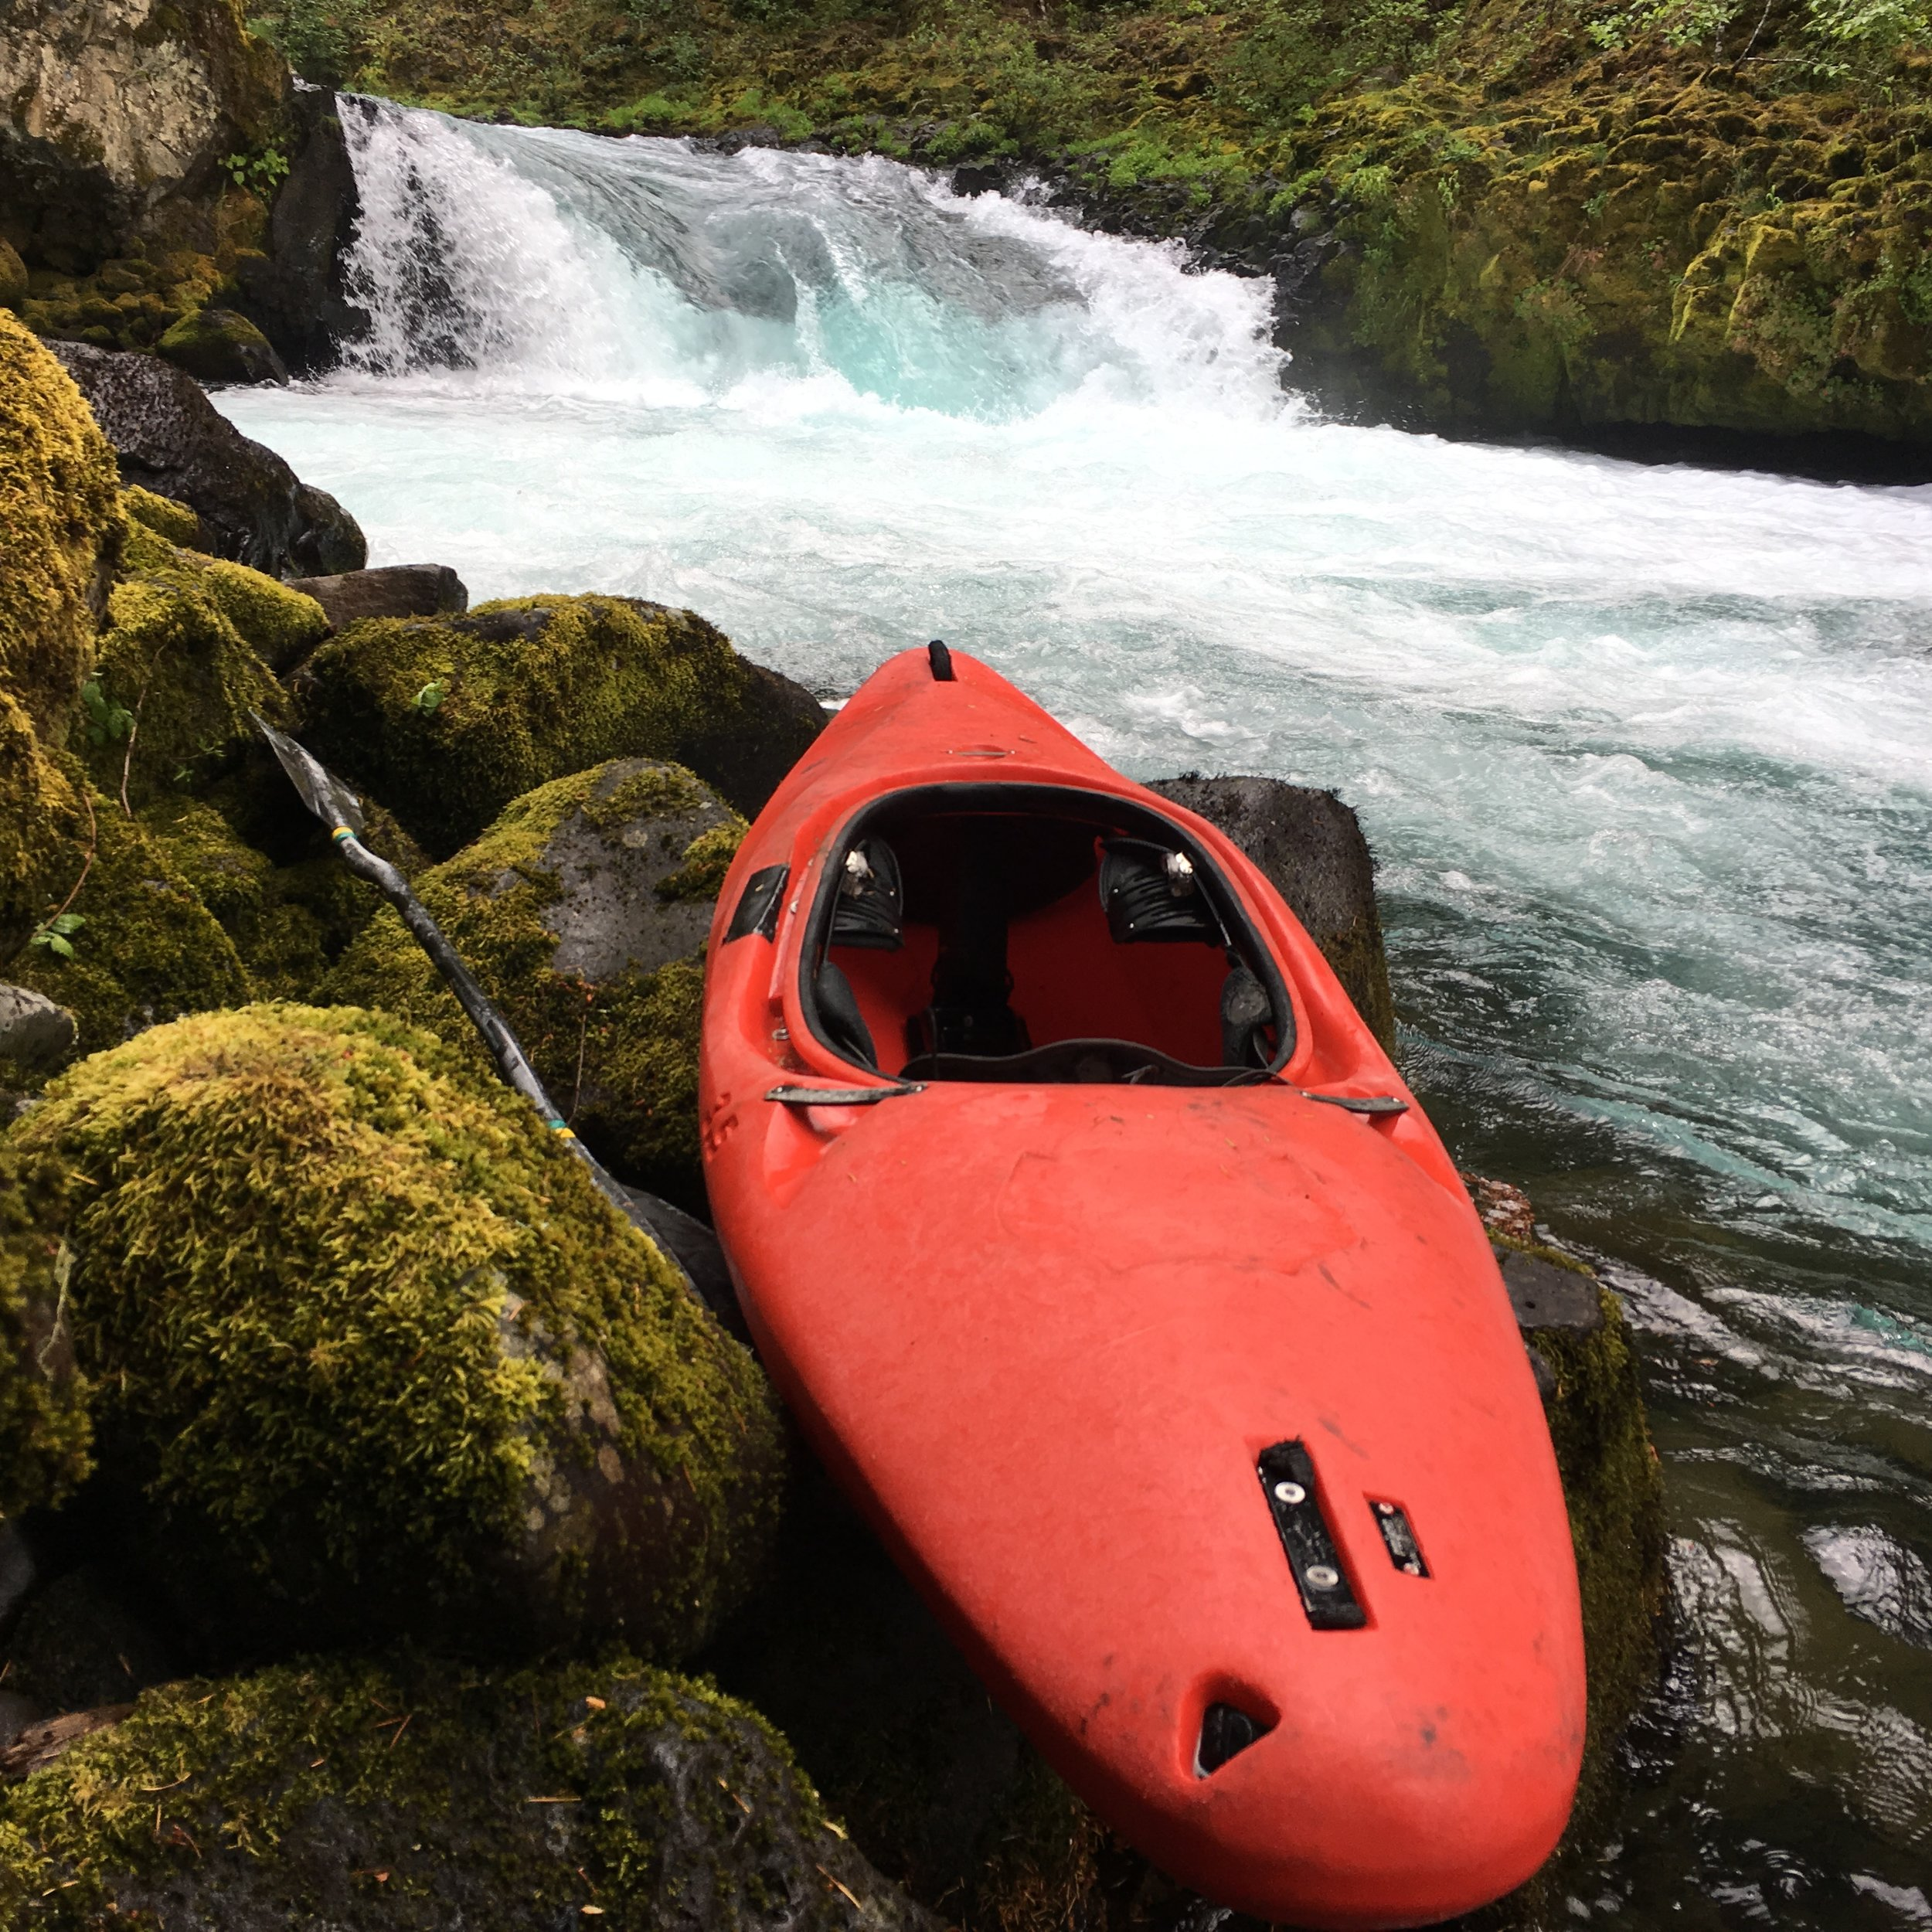 The author's kayak retrieved after 28 days in the cave (Photo courtesy of Adam Edwards).